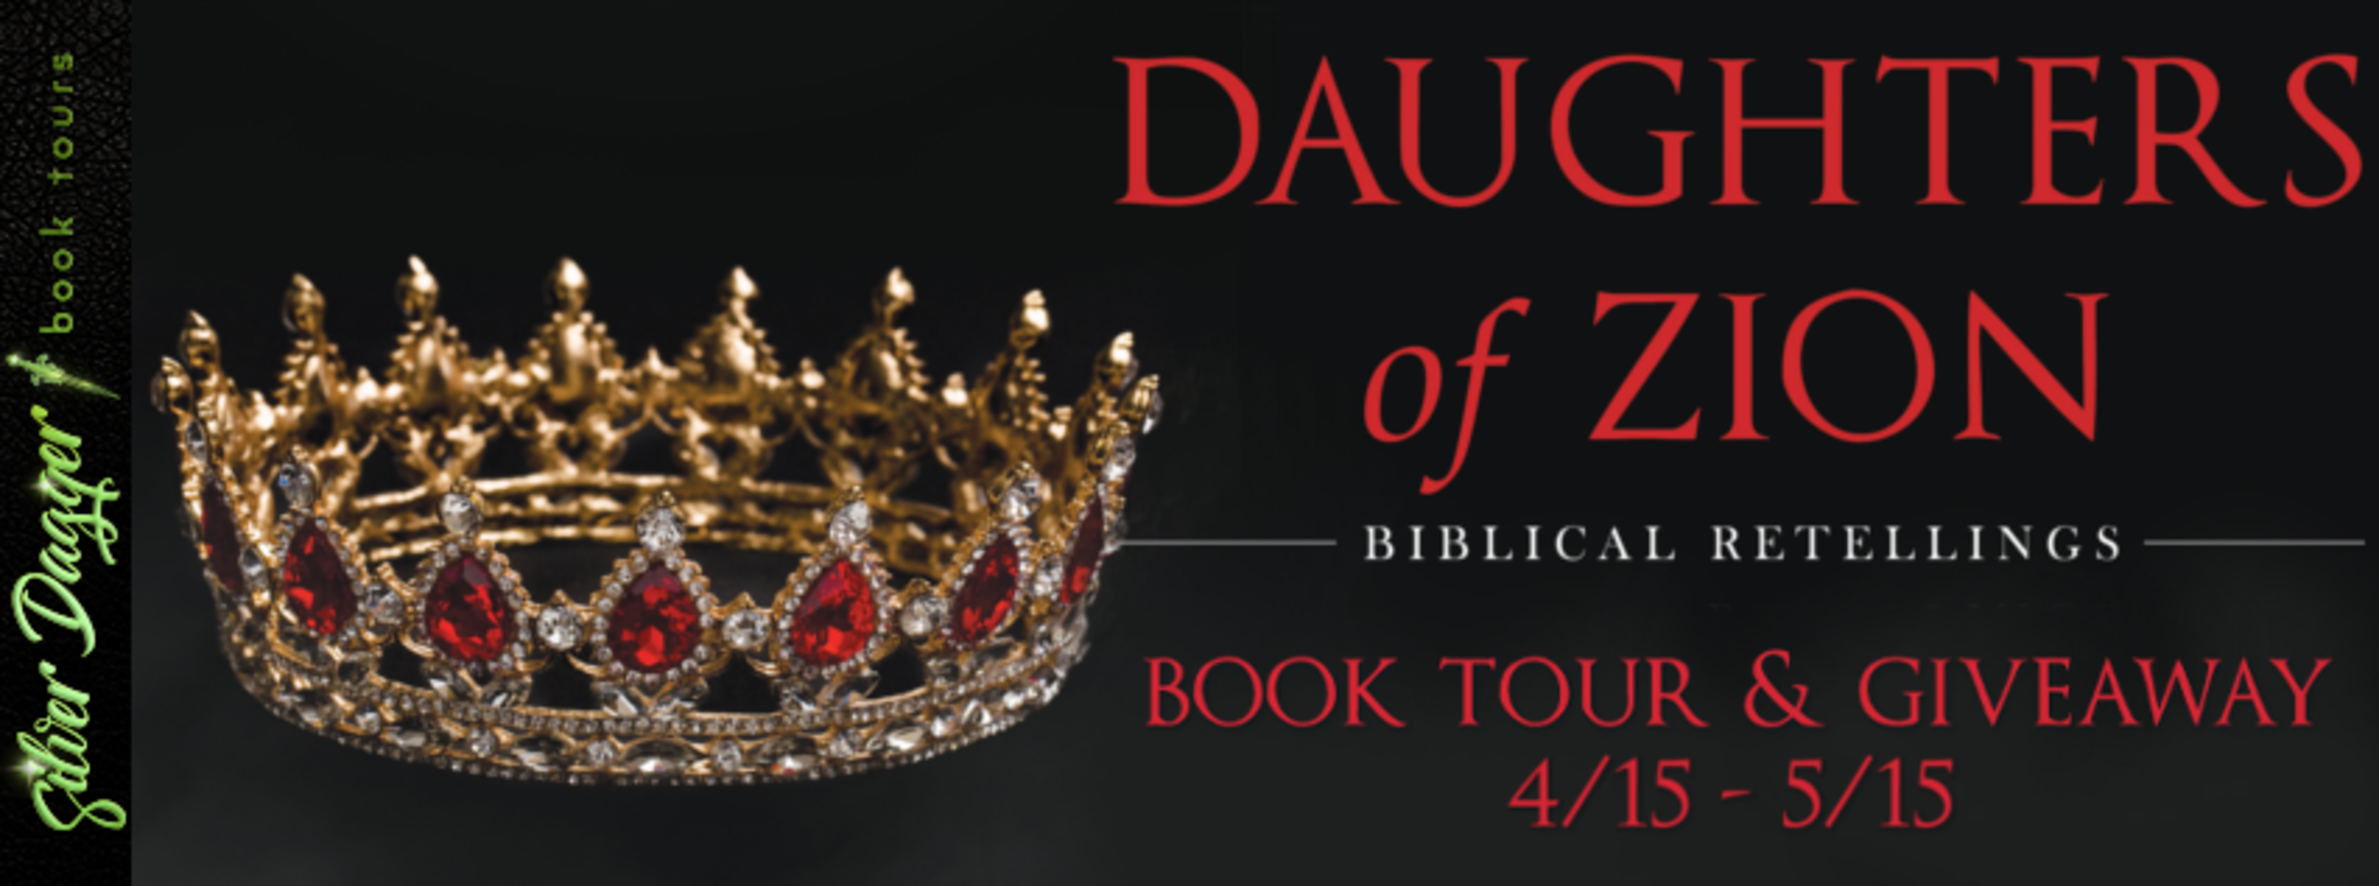 daughters-of-zion-banner-450